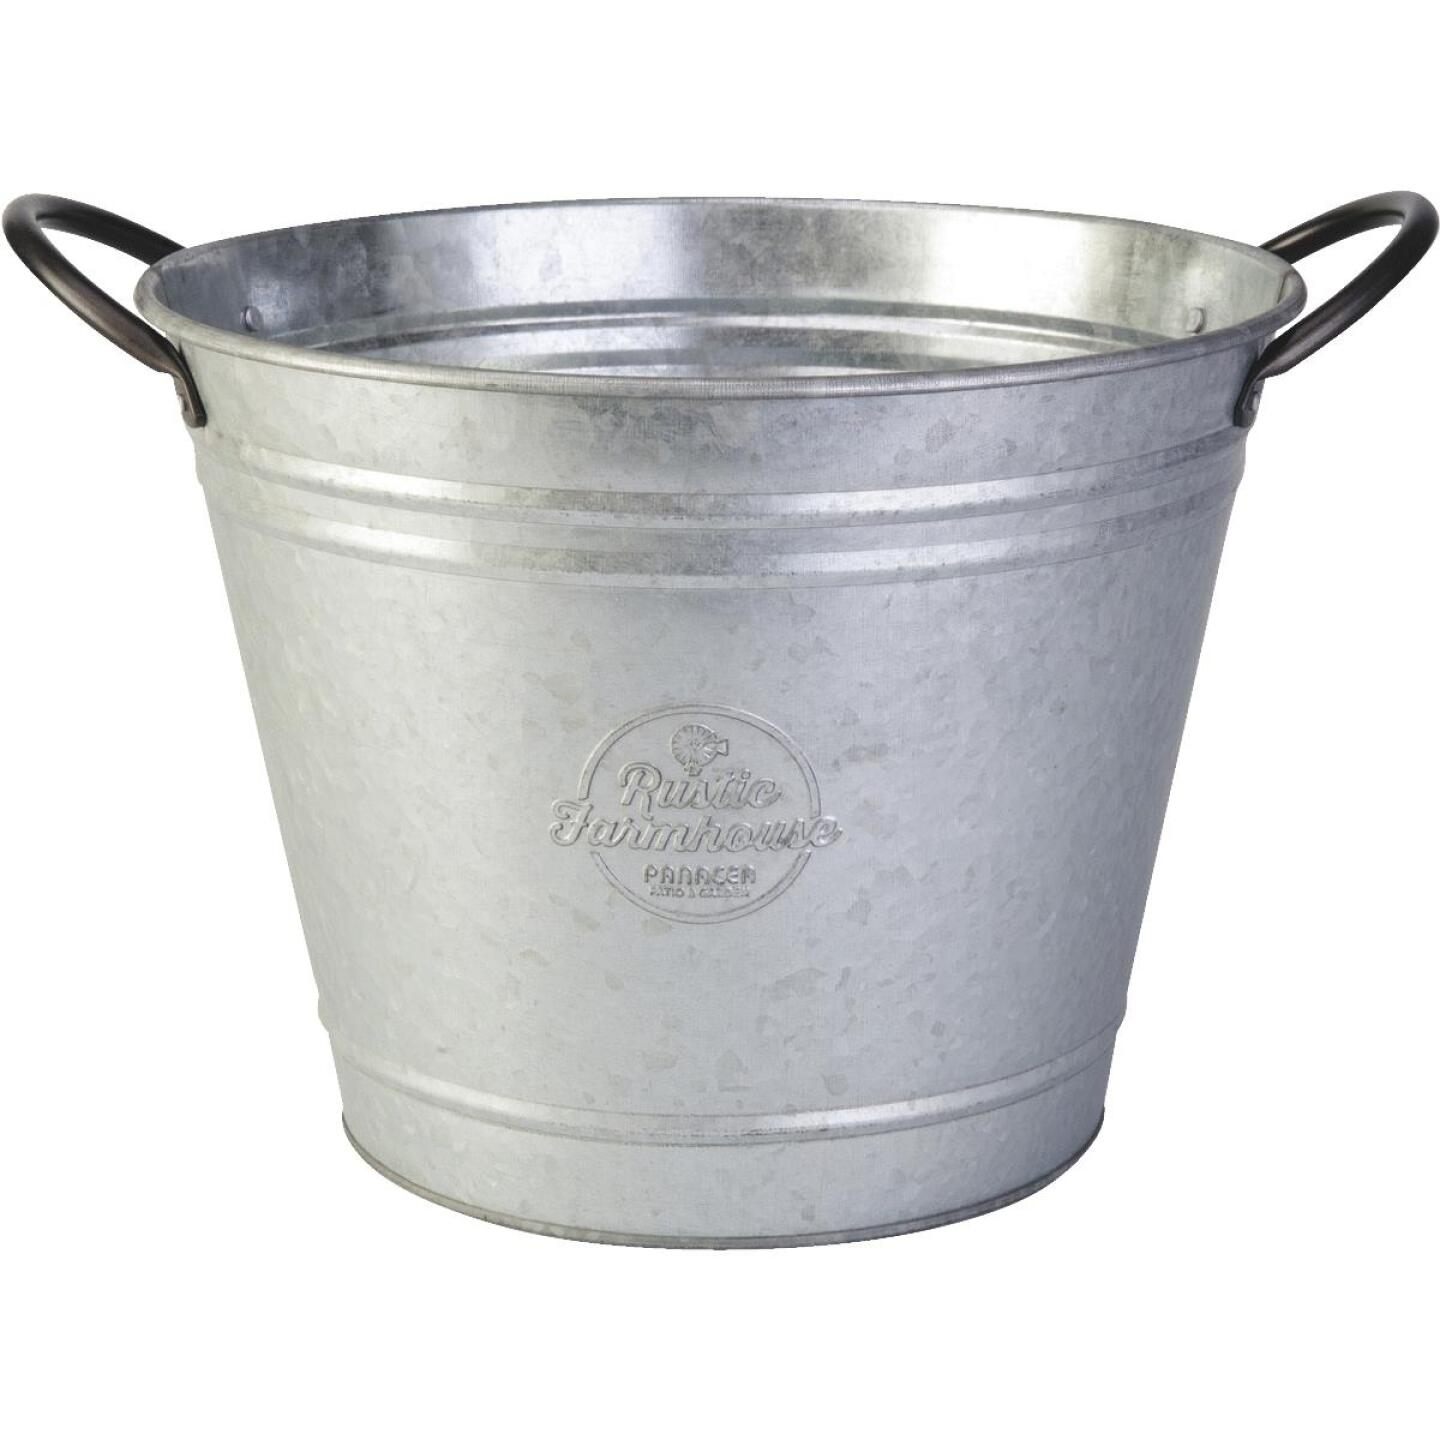 Panacea 10 In. Galvanized Steel Washtub Planter Image 1